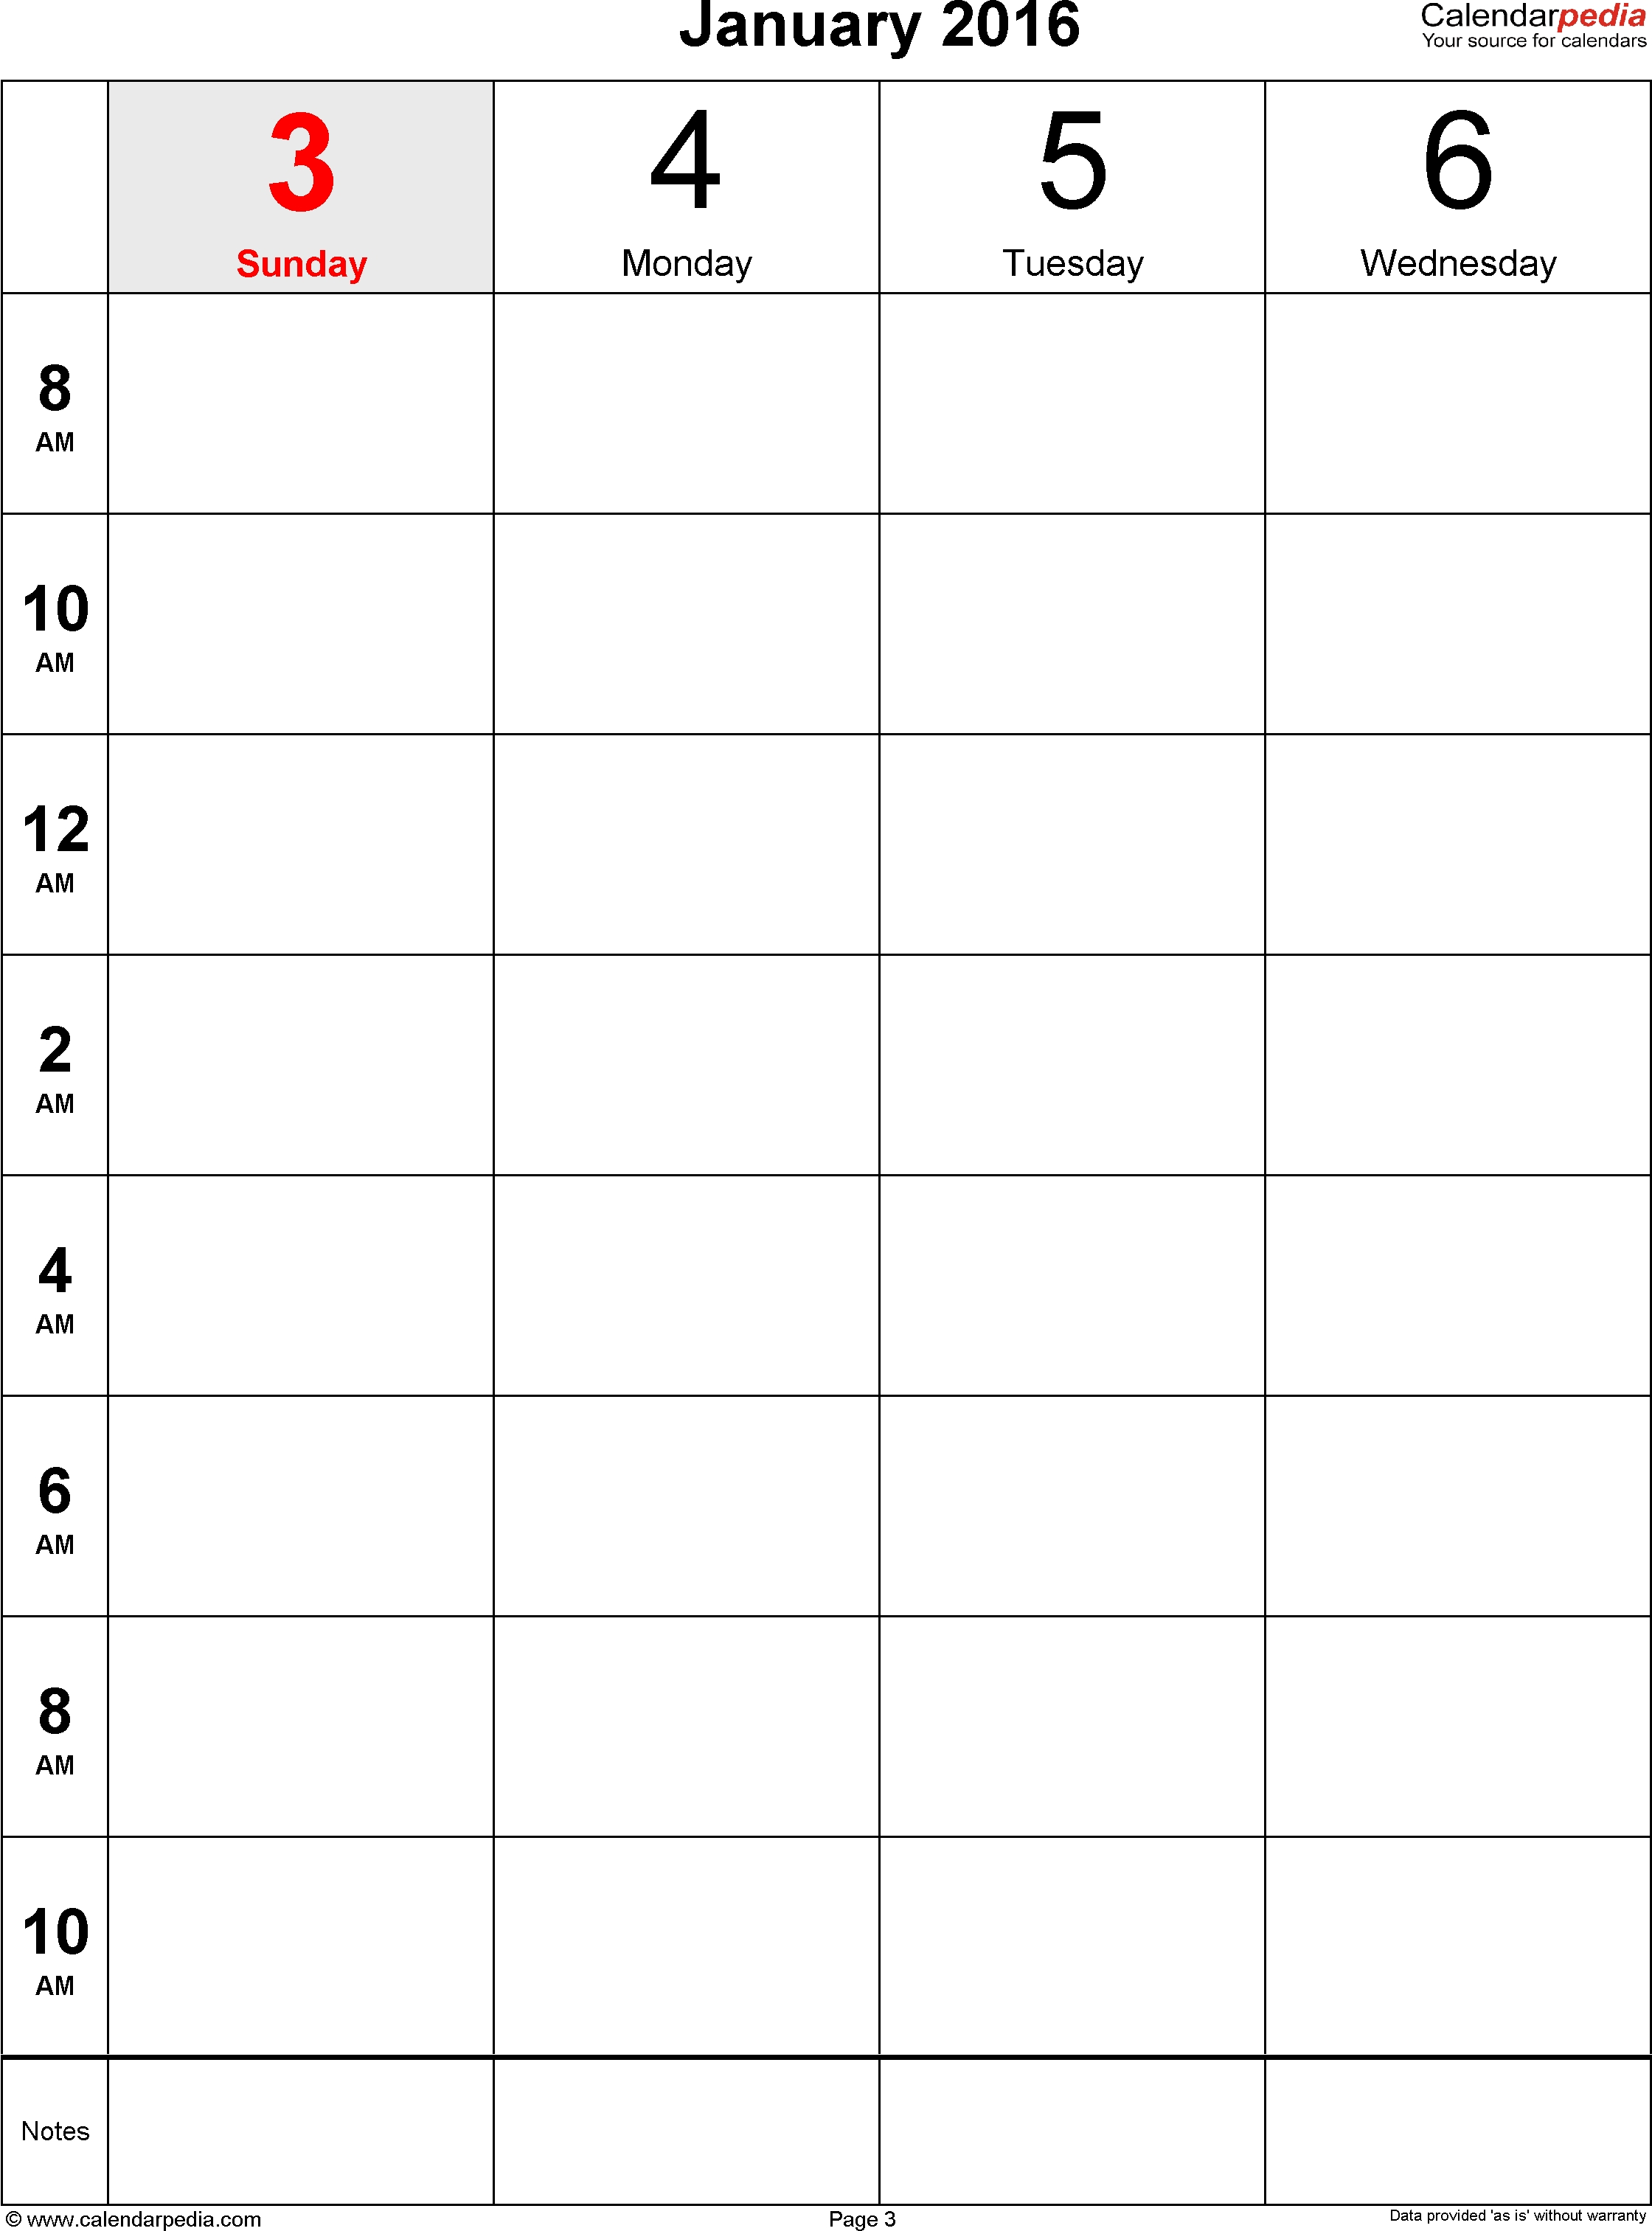 Weekly Calendar 2016 For Word - 12 Free Printable Templates intended for 7 Day 12 Week Planner Blank